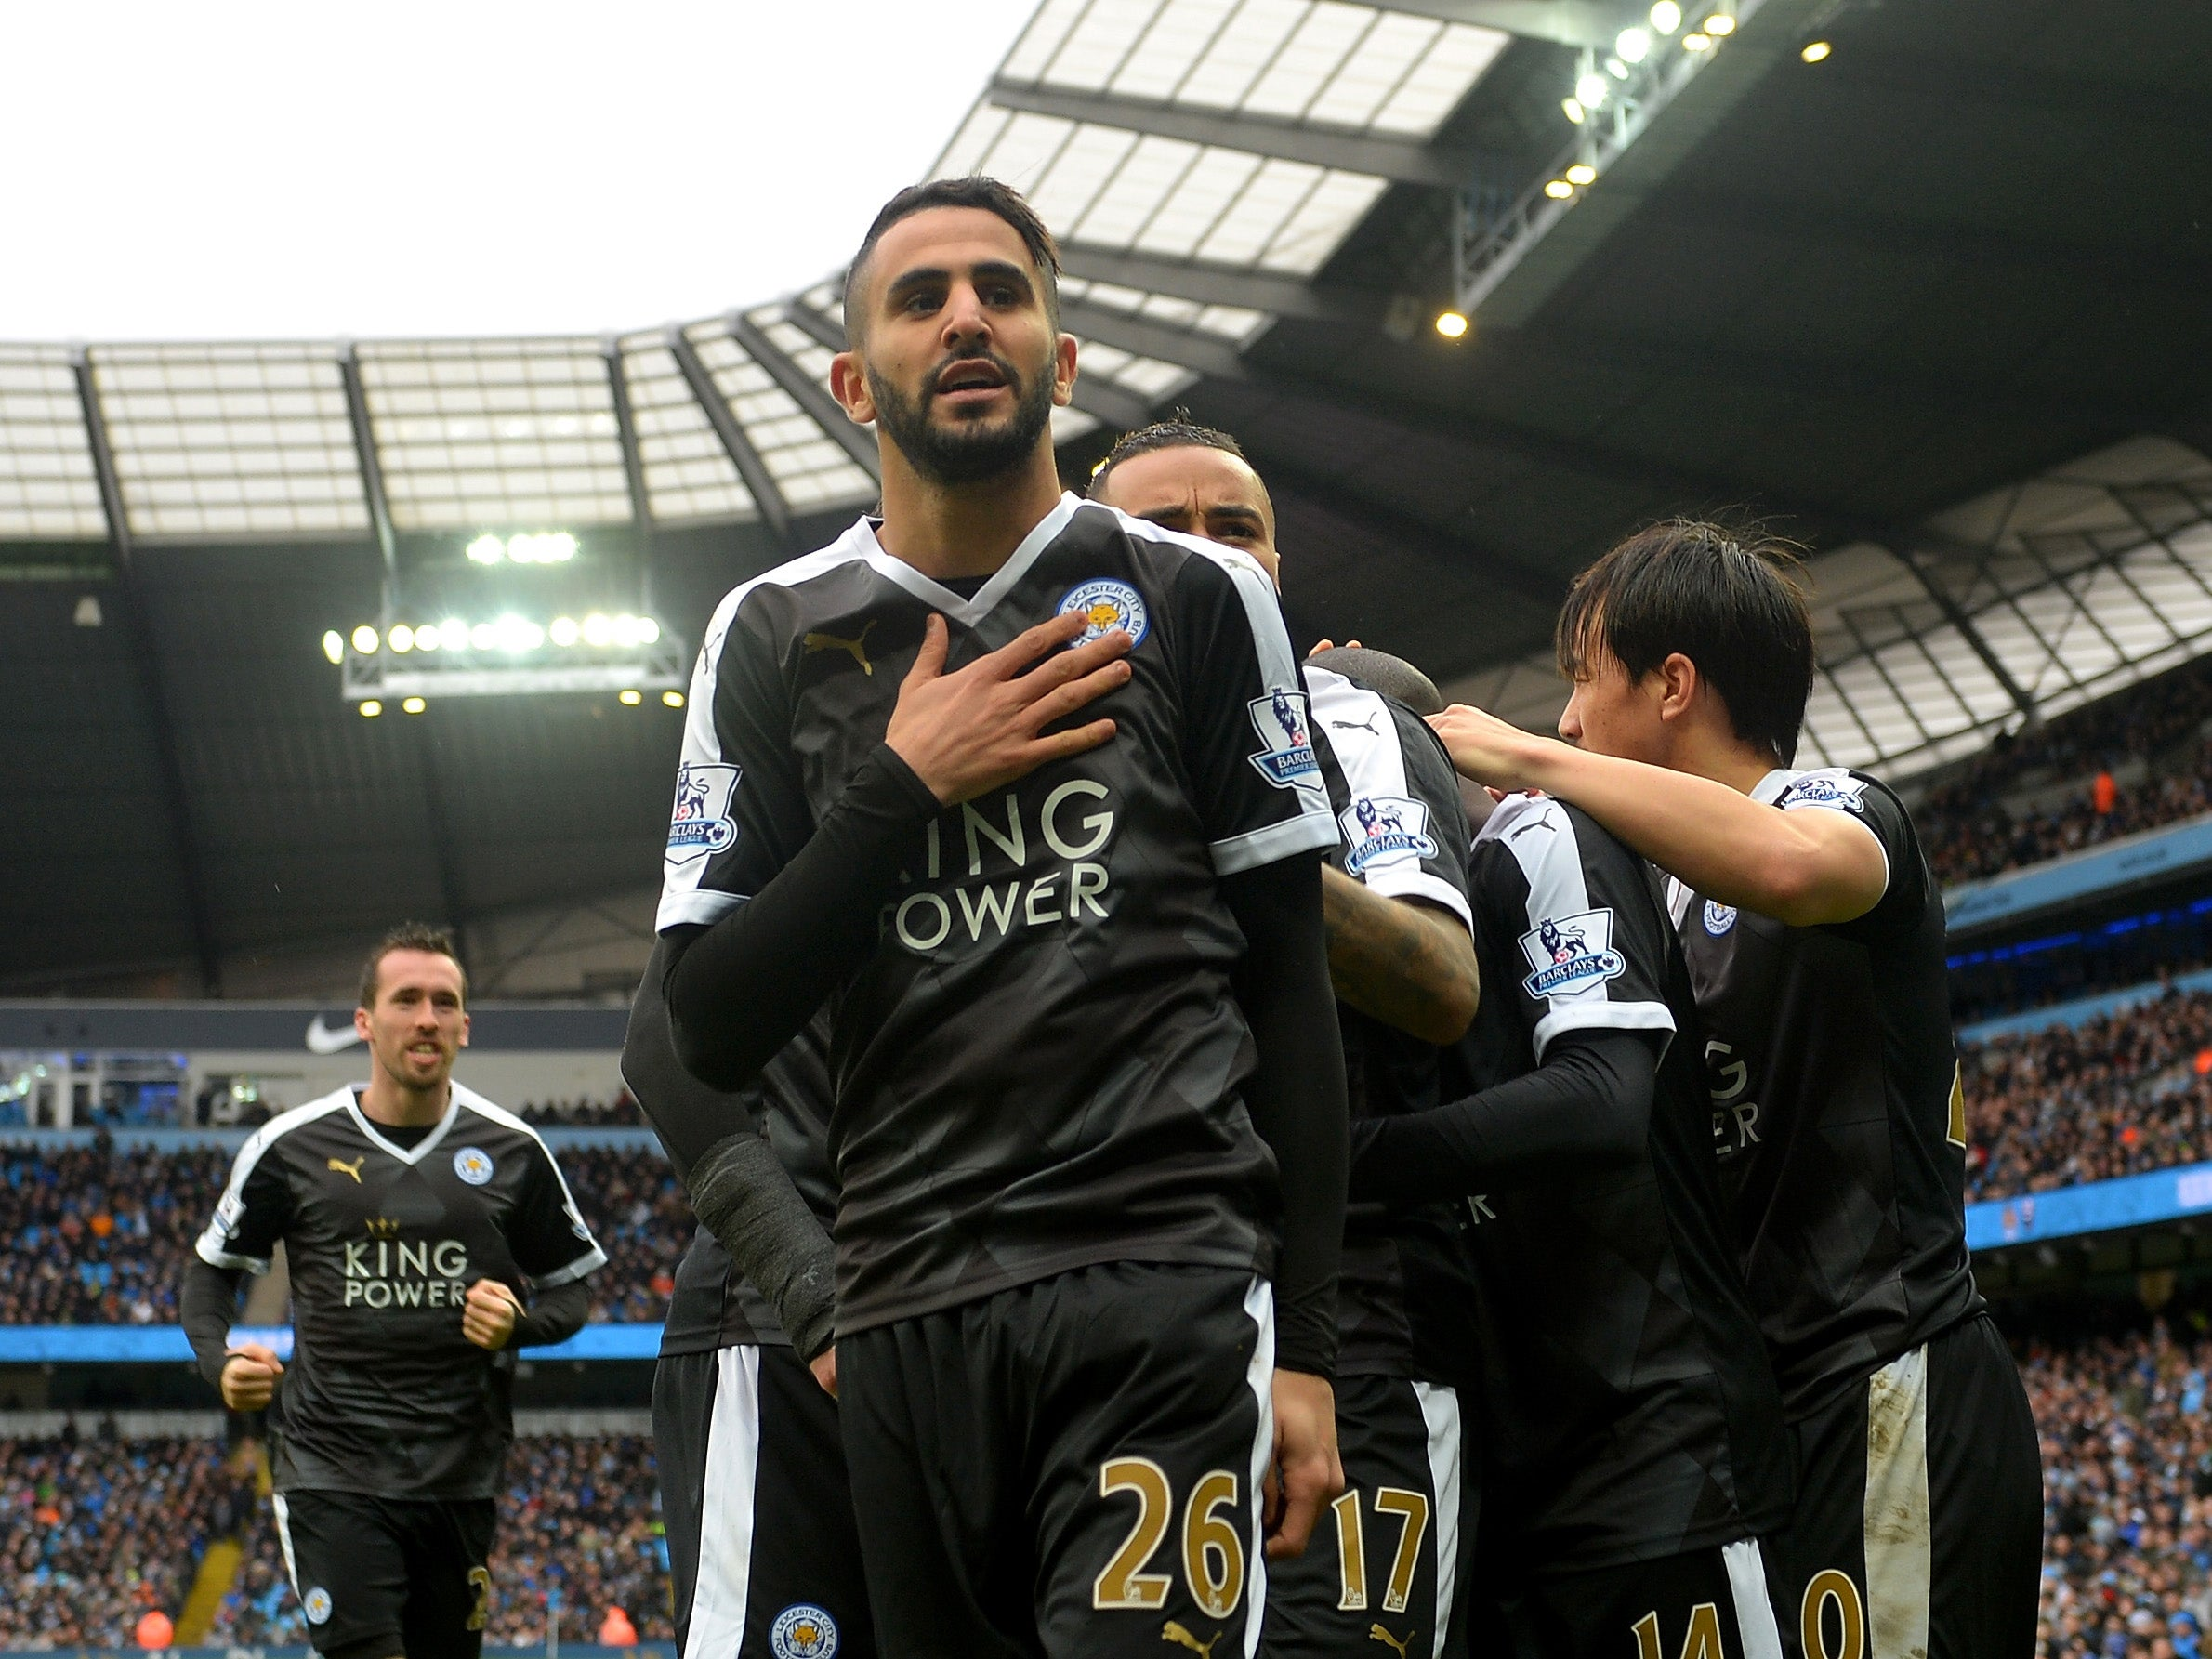 Leicester City run away at top; Liverpool fans make a stand; Tottenham creep into title race; Louis van Gaal fights back